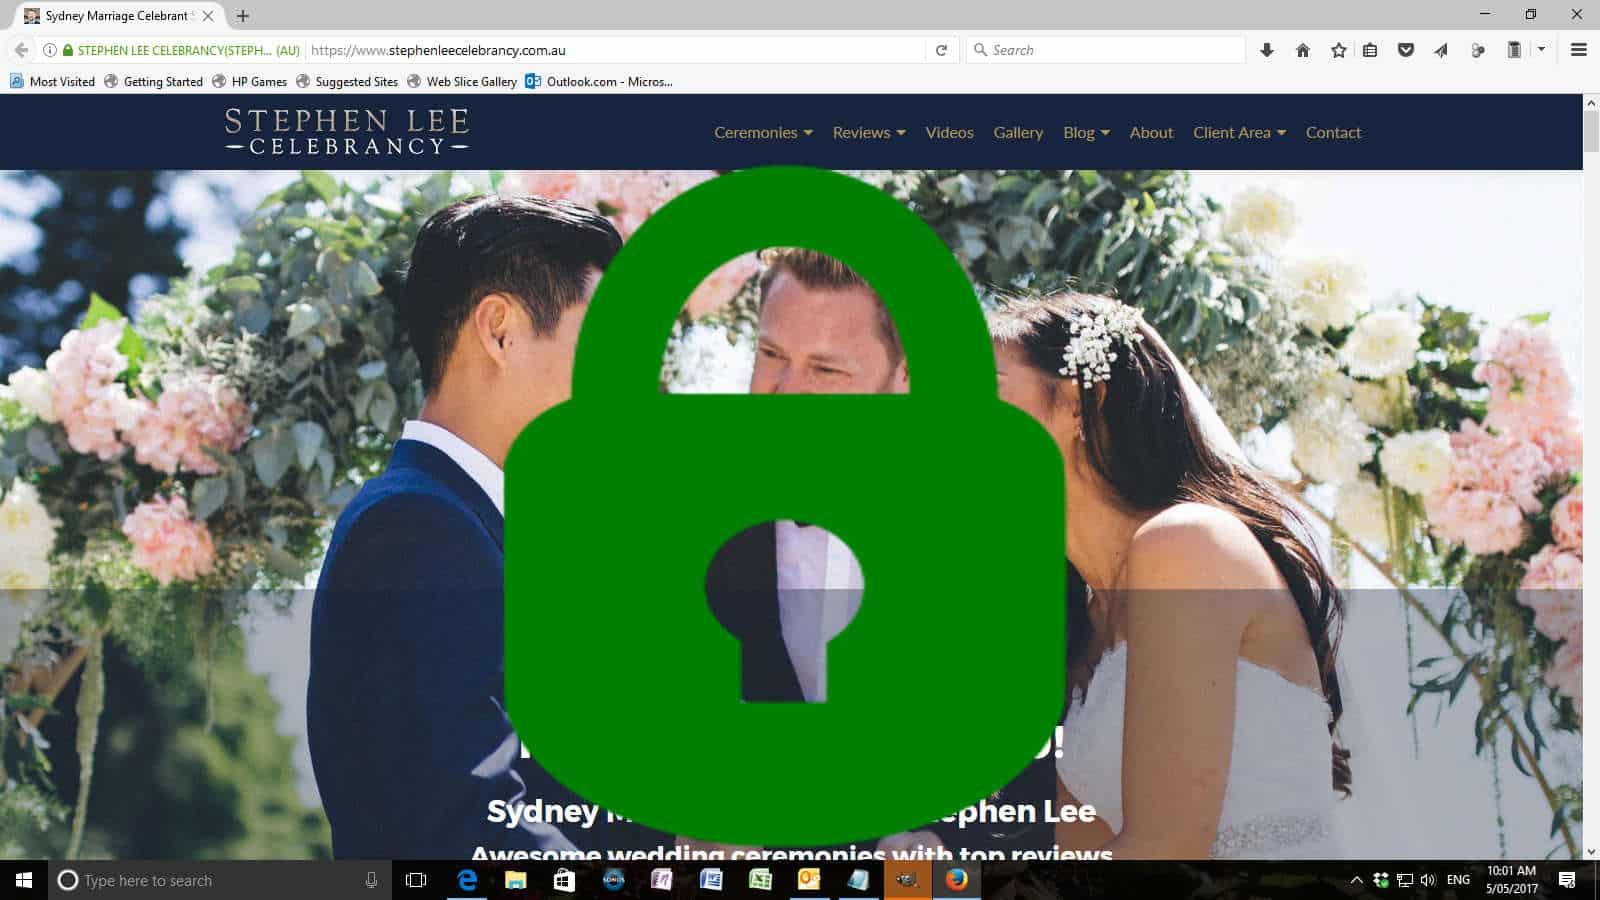 SLC Website with Green Padlock - Sydney Marriage Celebrant Stephen Lee